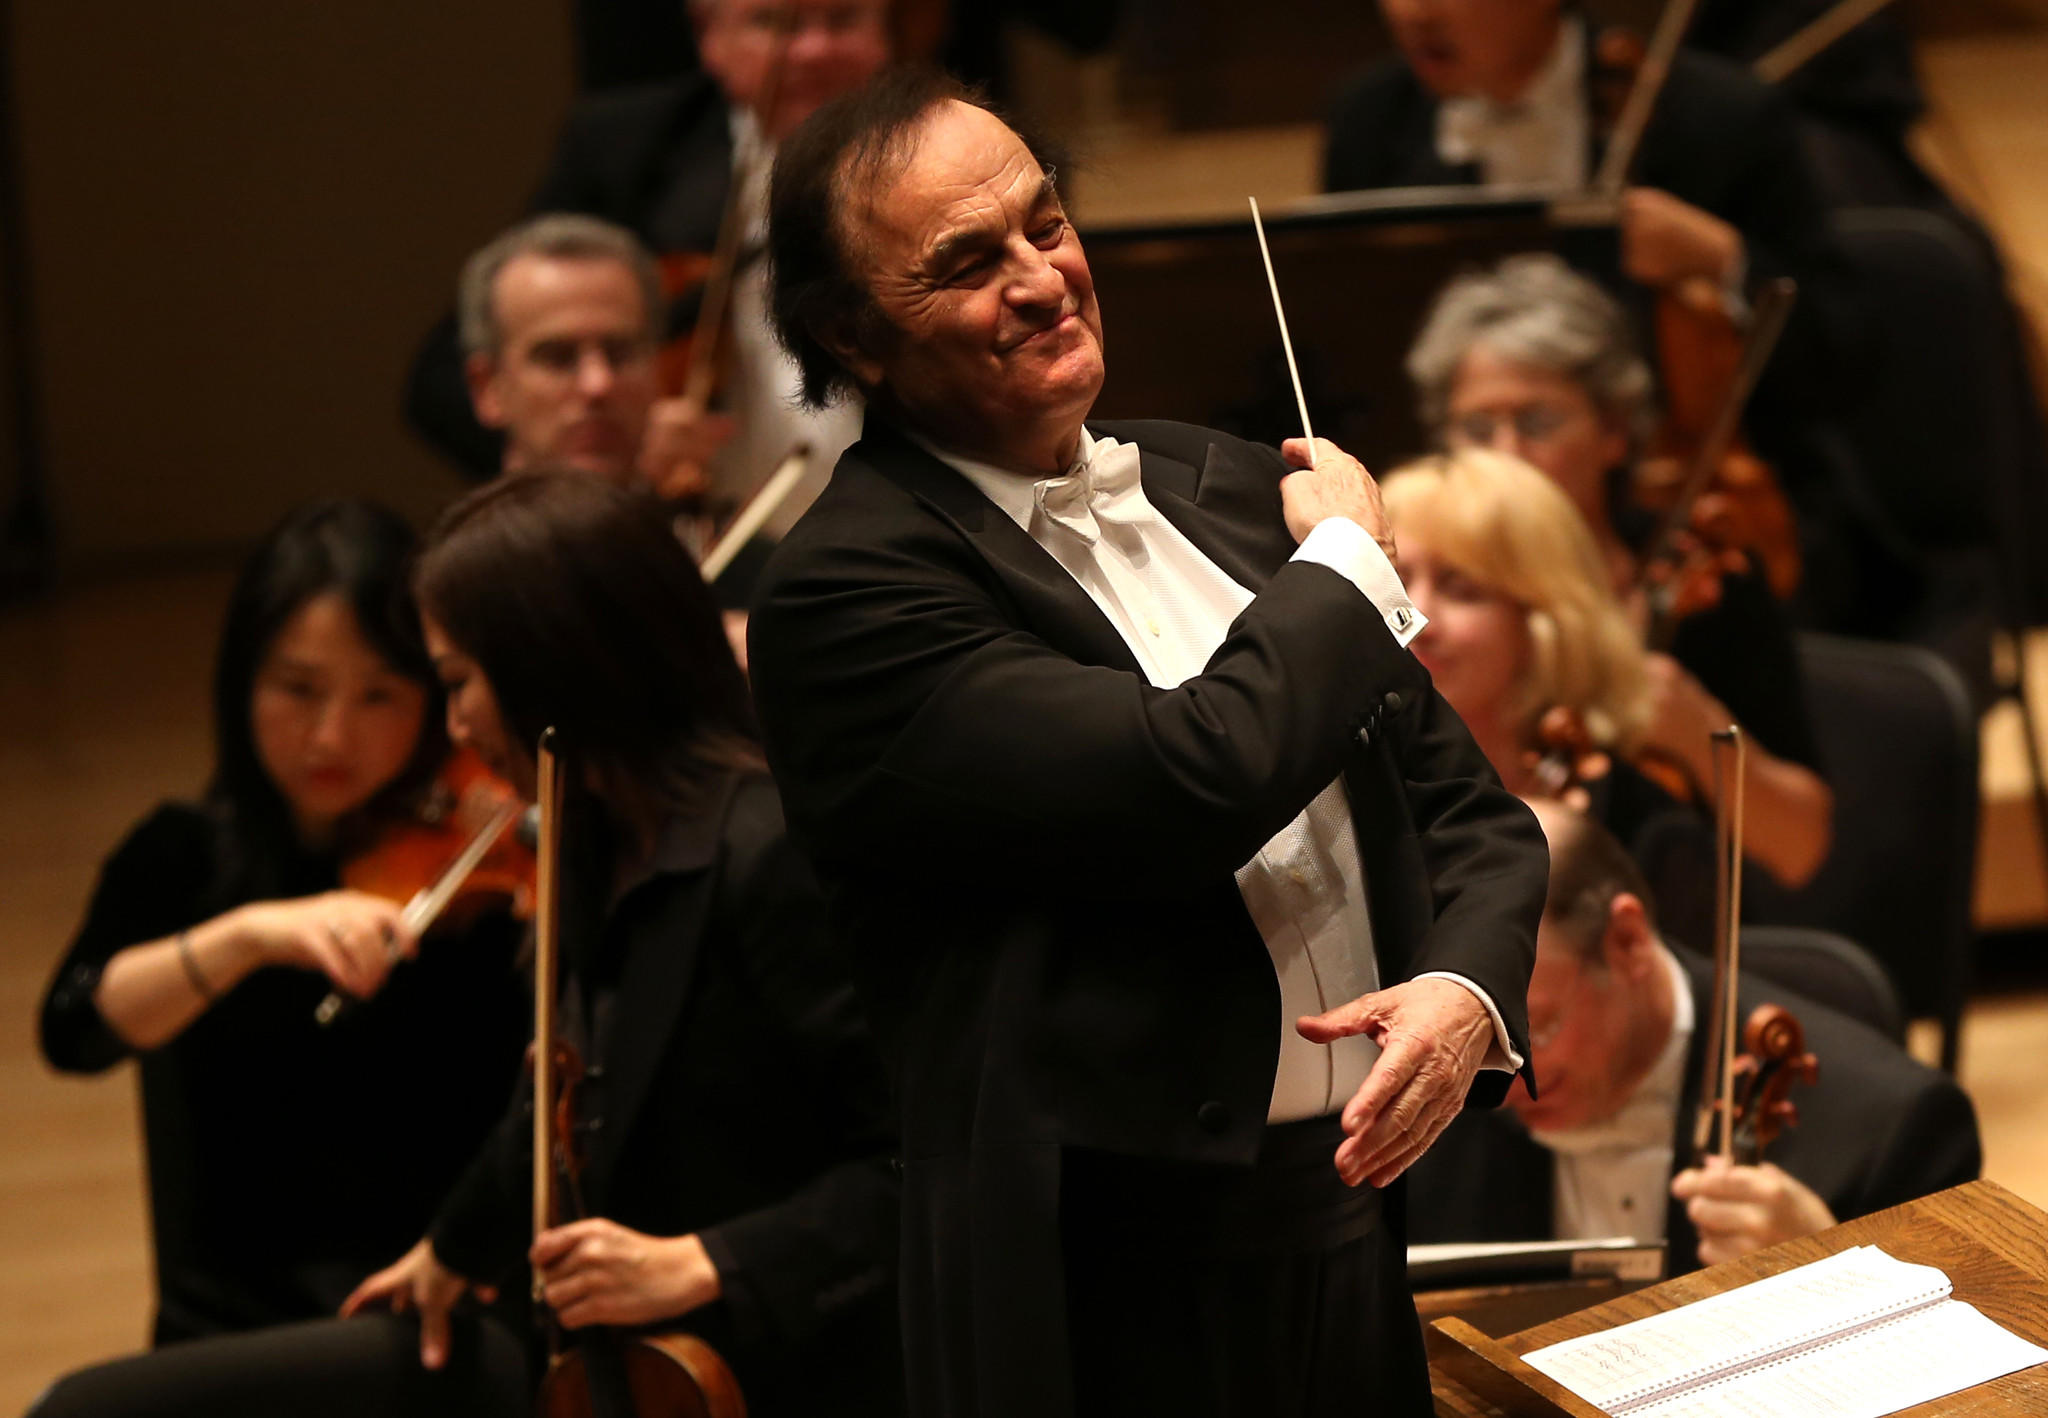 Conductor Charles Dutoit brings the Chicago Symphony Orchestra to a big finish at Symphony Center in this file photograph.